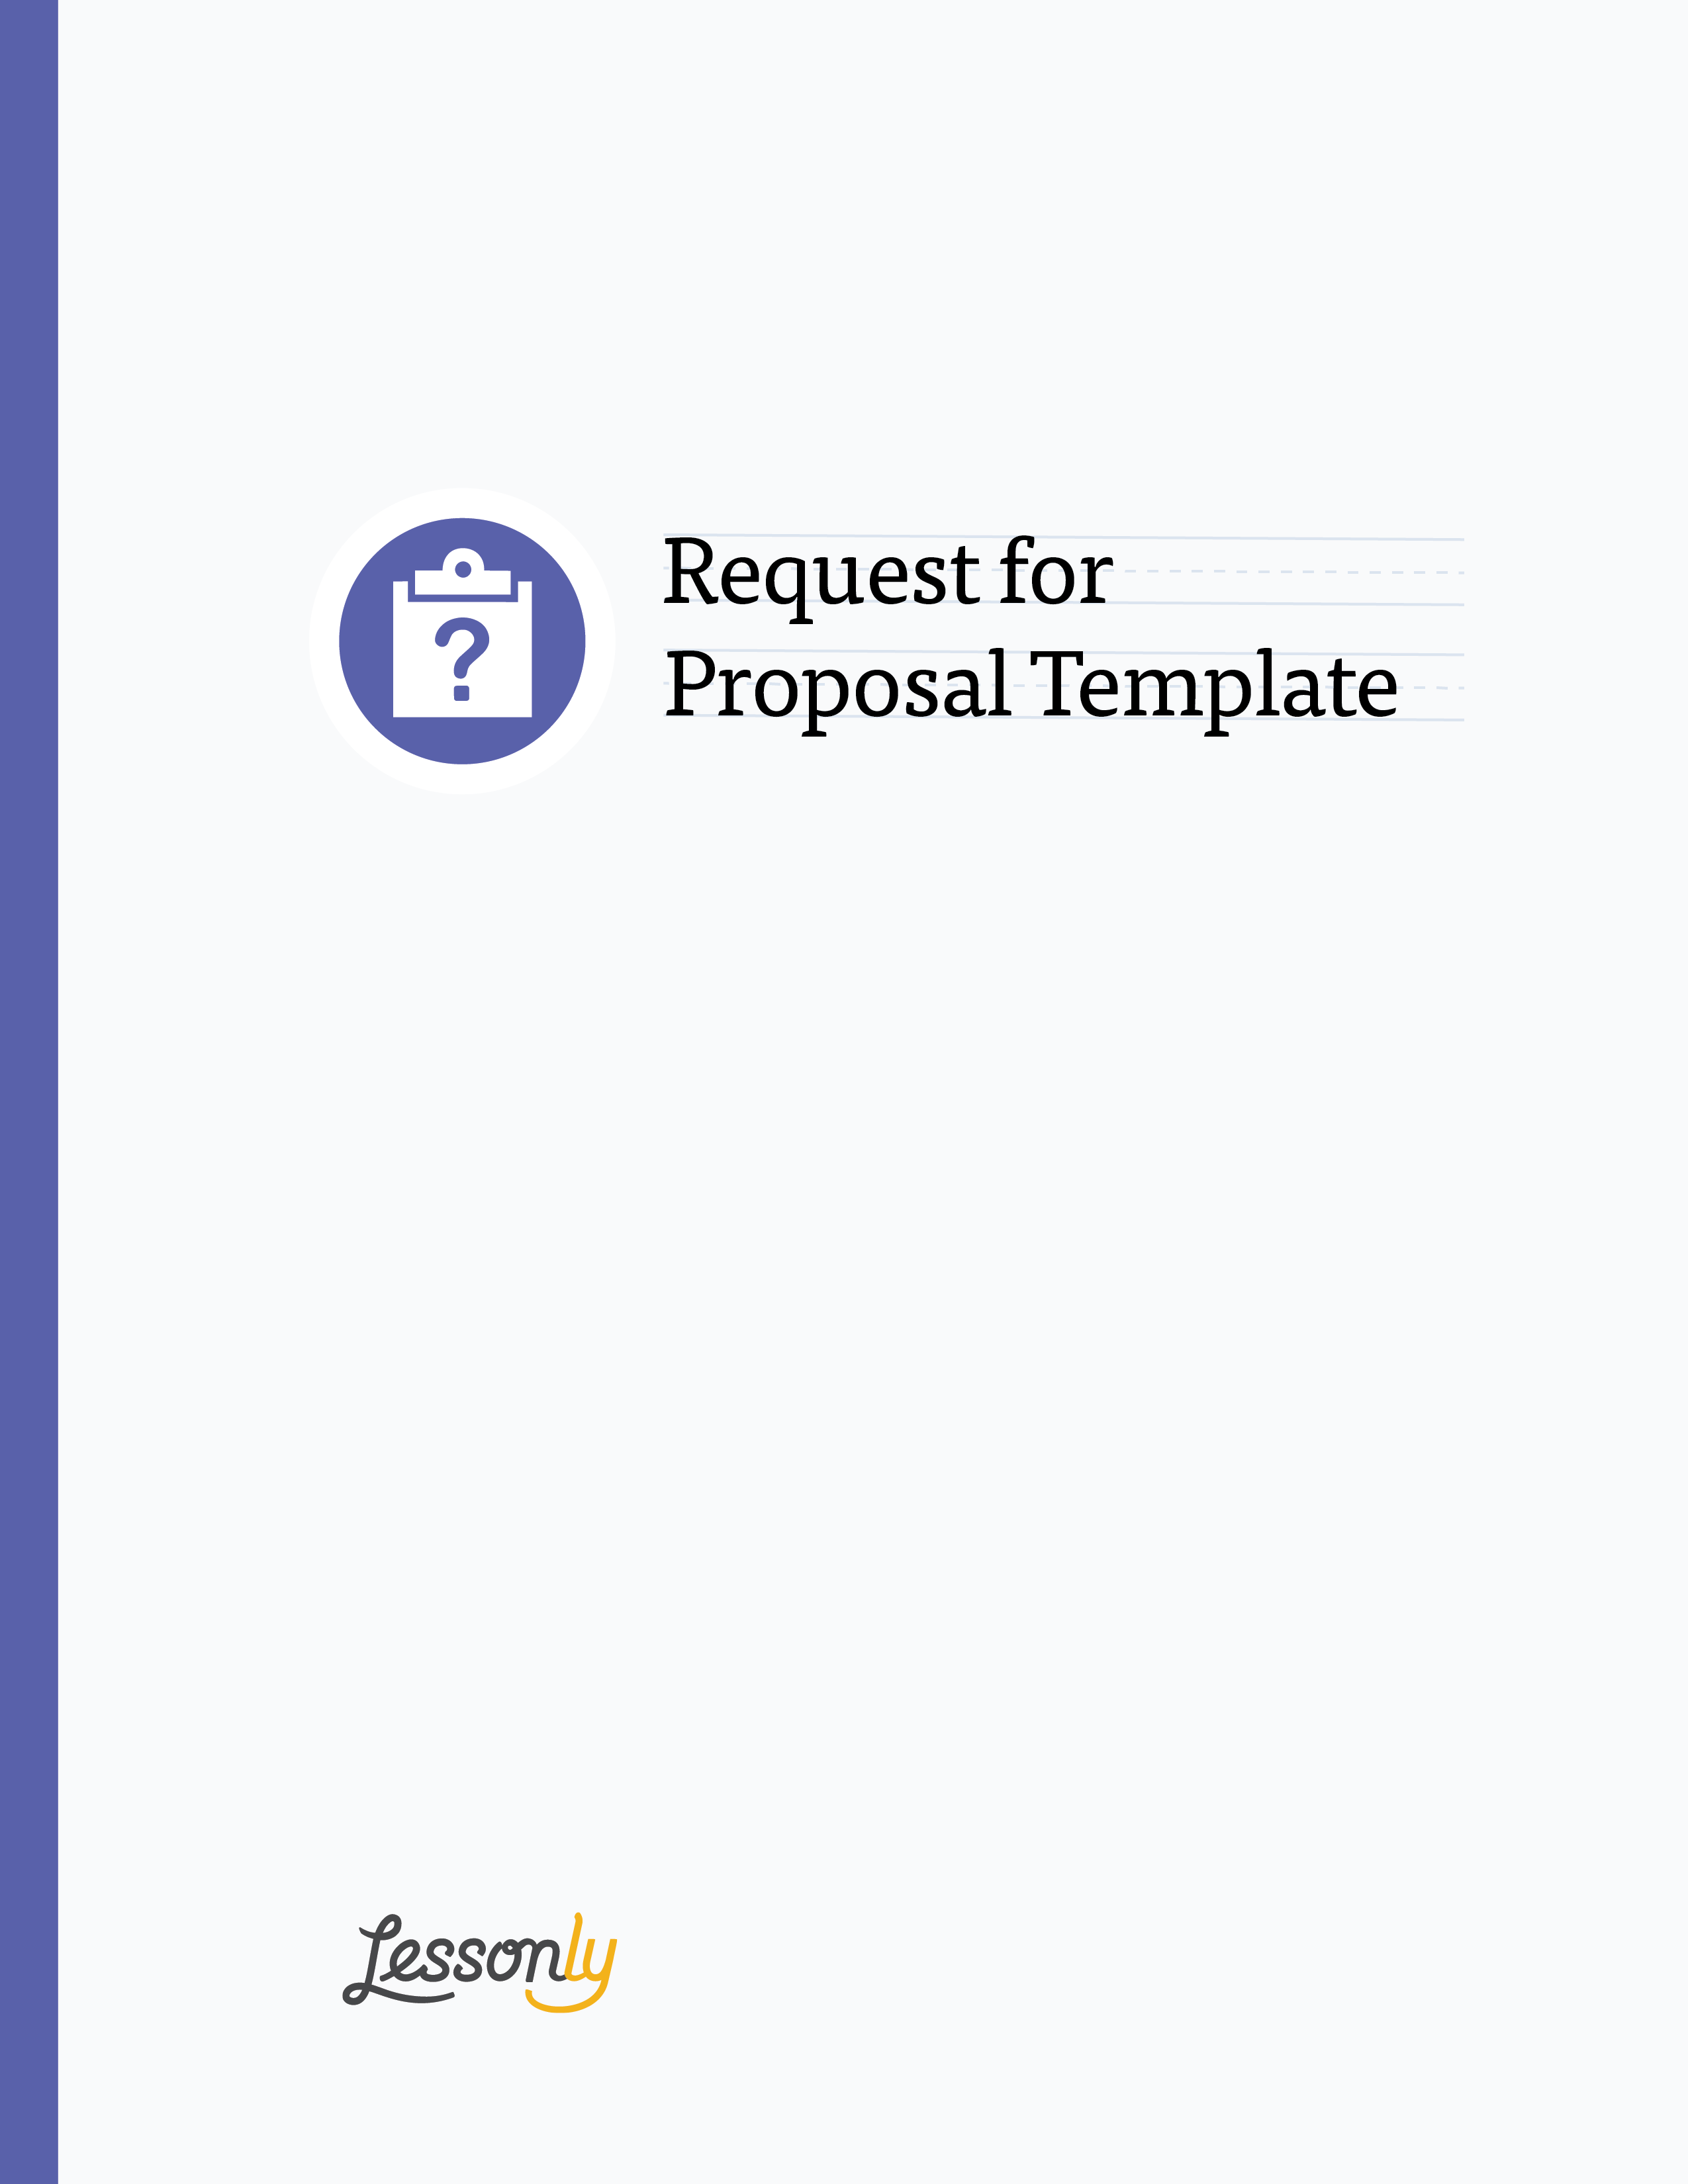 Free lms request for proposal template lessonly for Request for bids template